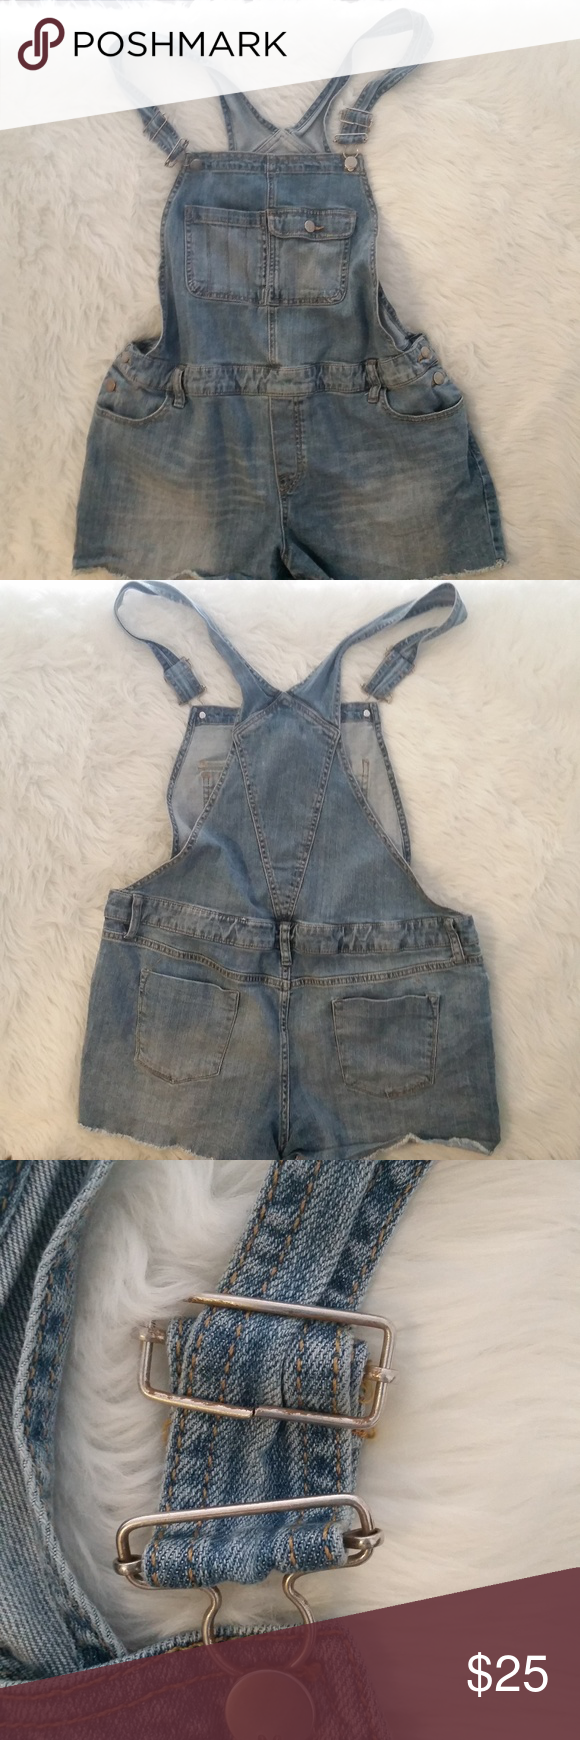 00f141fdb18 Mossimo Denim Plus Size XXL Overalls Shorts   Hardwear has a crack but it  does not affect the garments functionality   Close up pic provided Mossimo  Plus ...